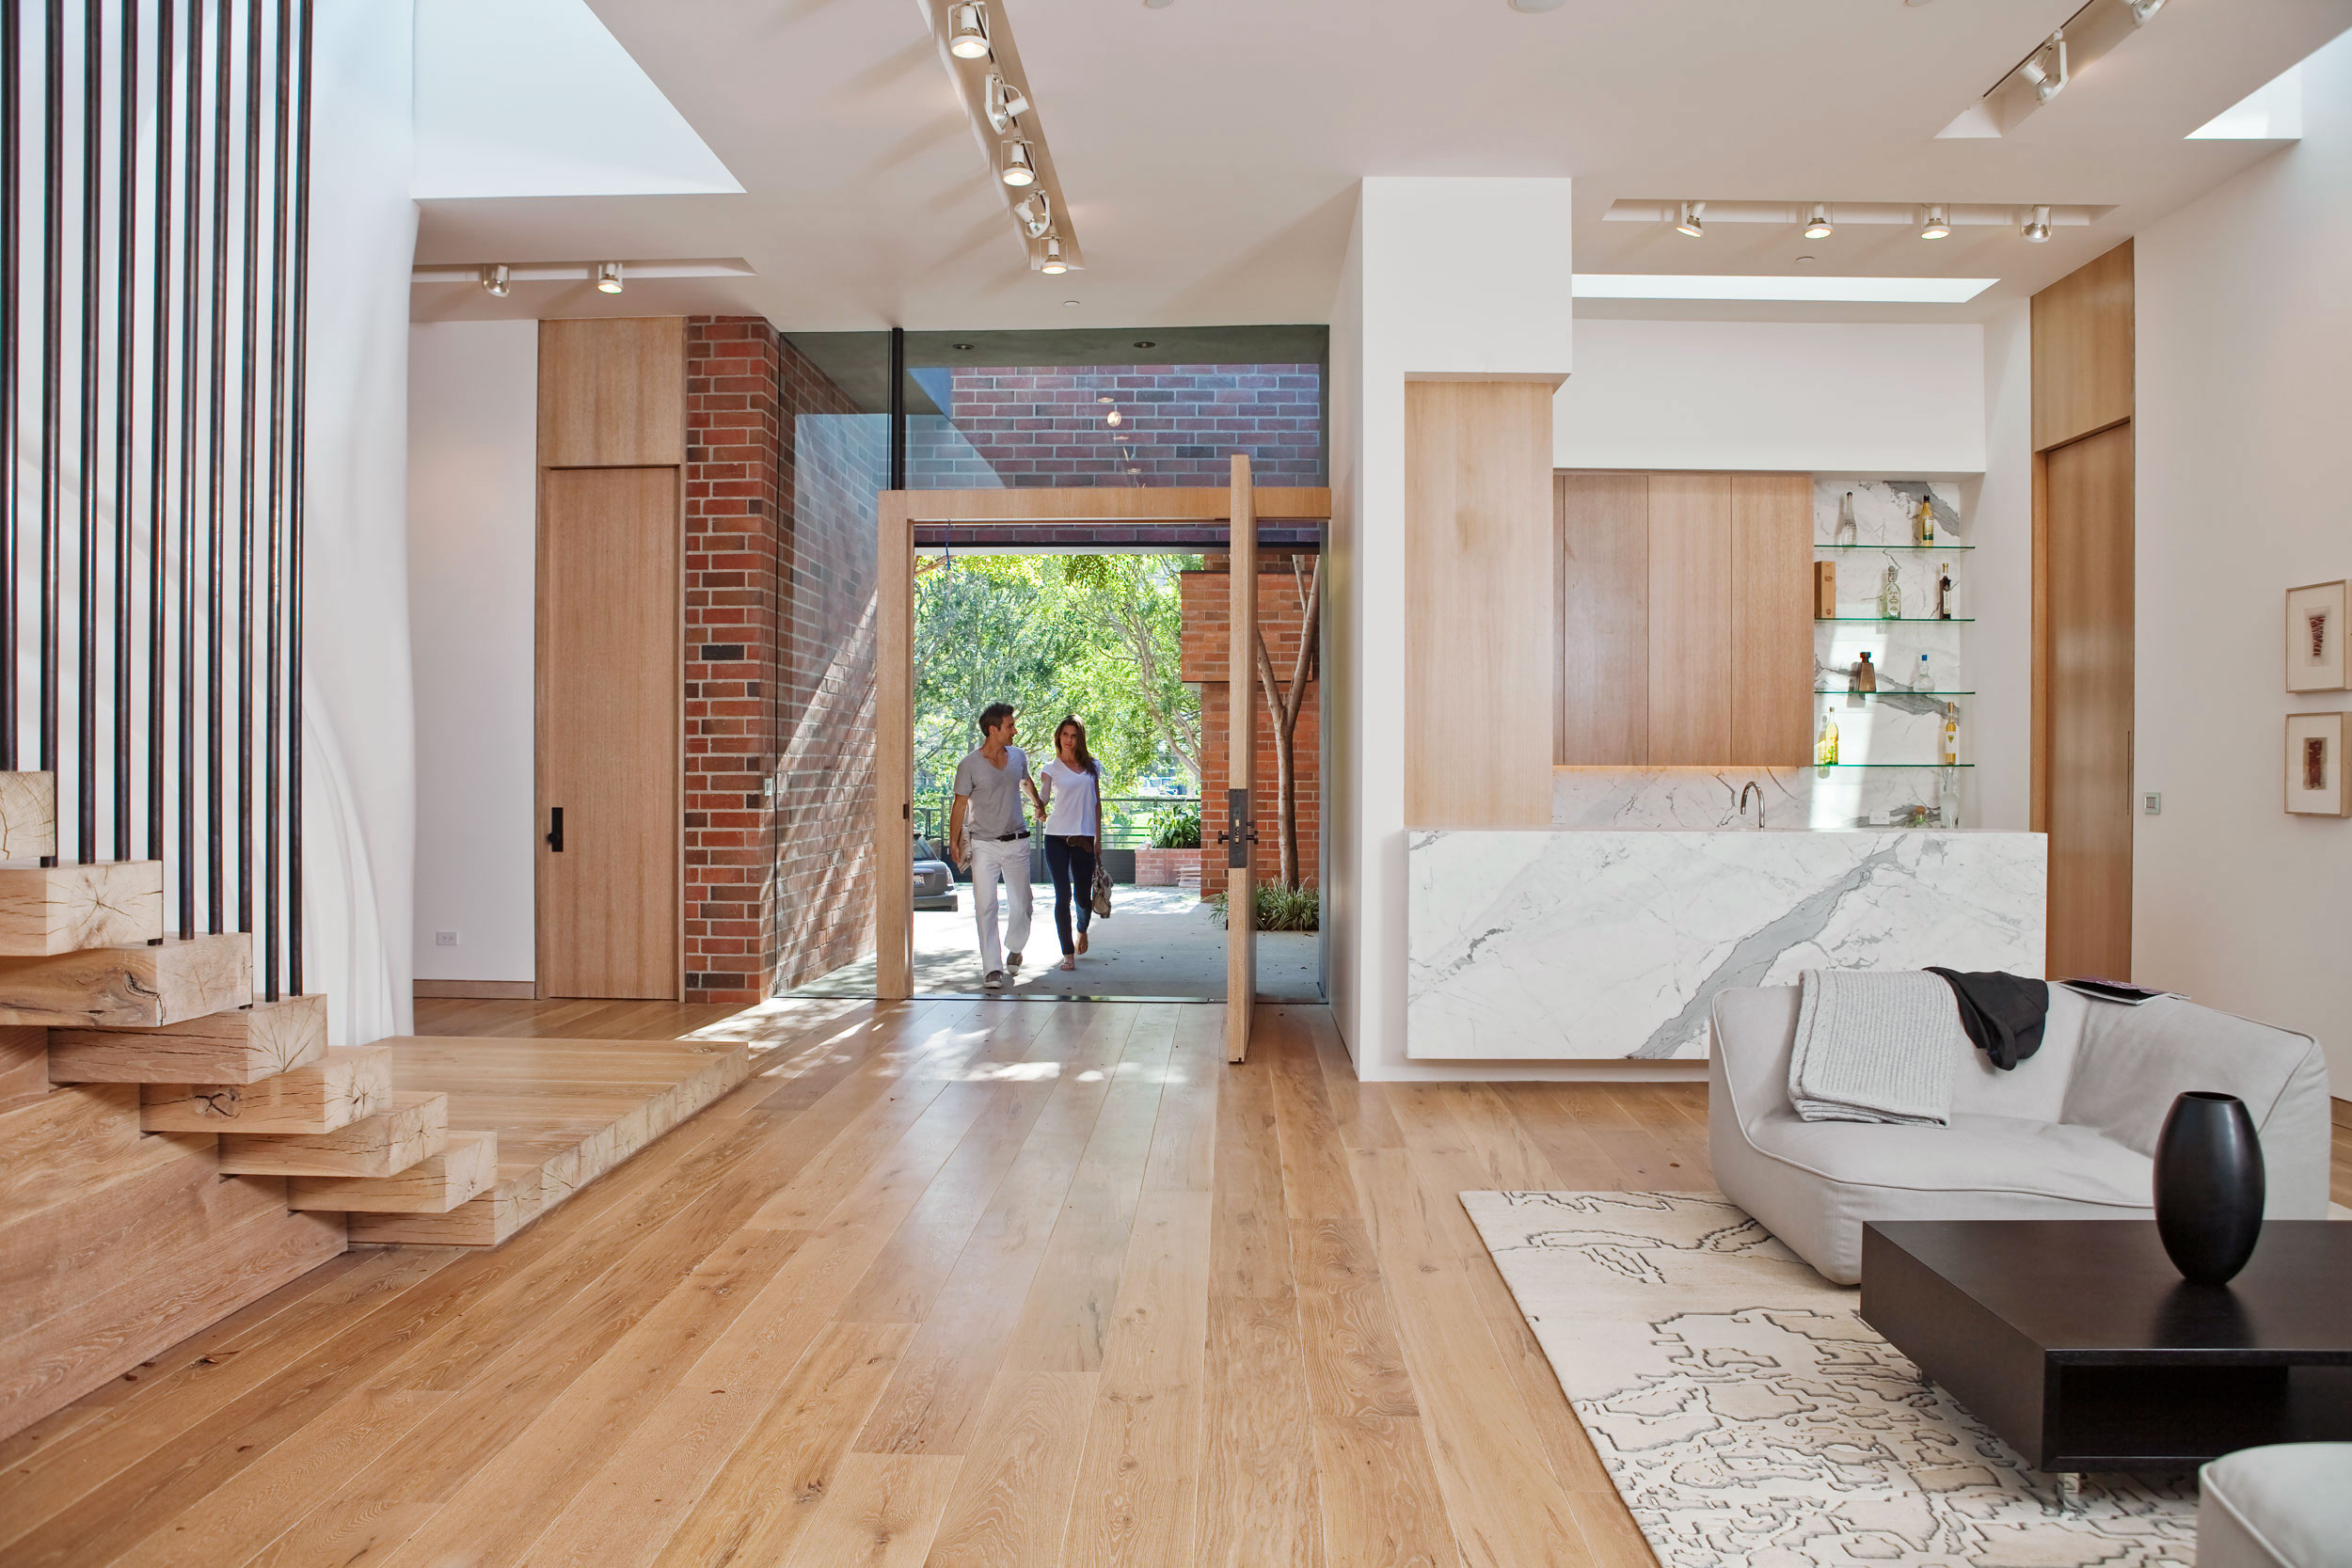 Heroic Home Lifestyle by Michael Weschler Photography, Los Angeles to New York